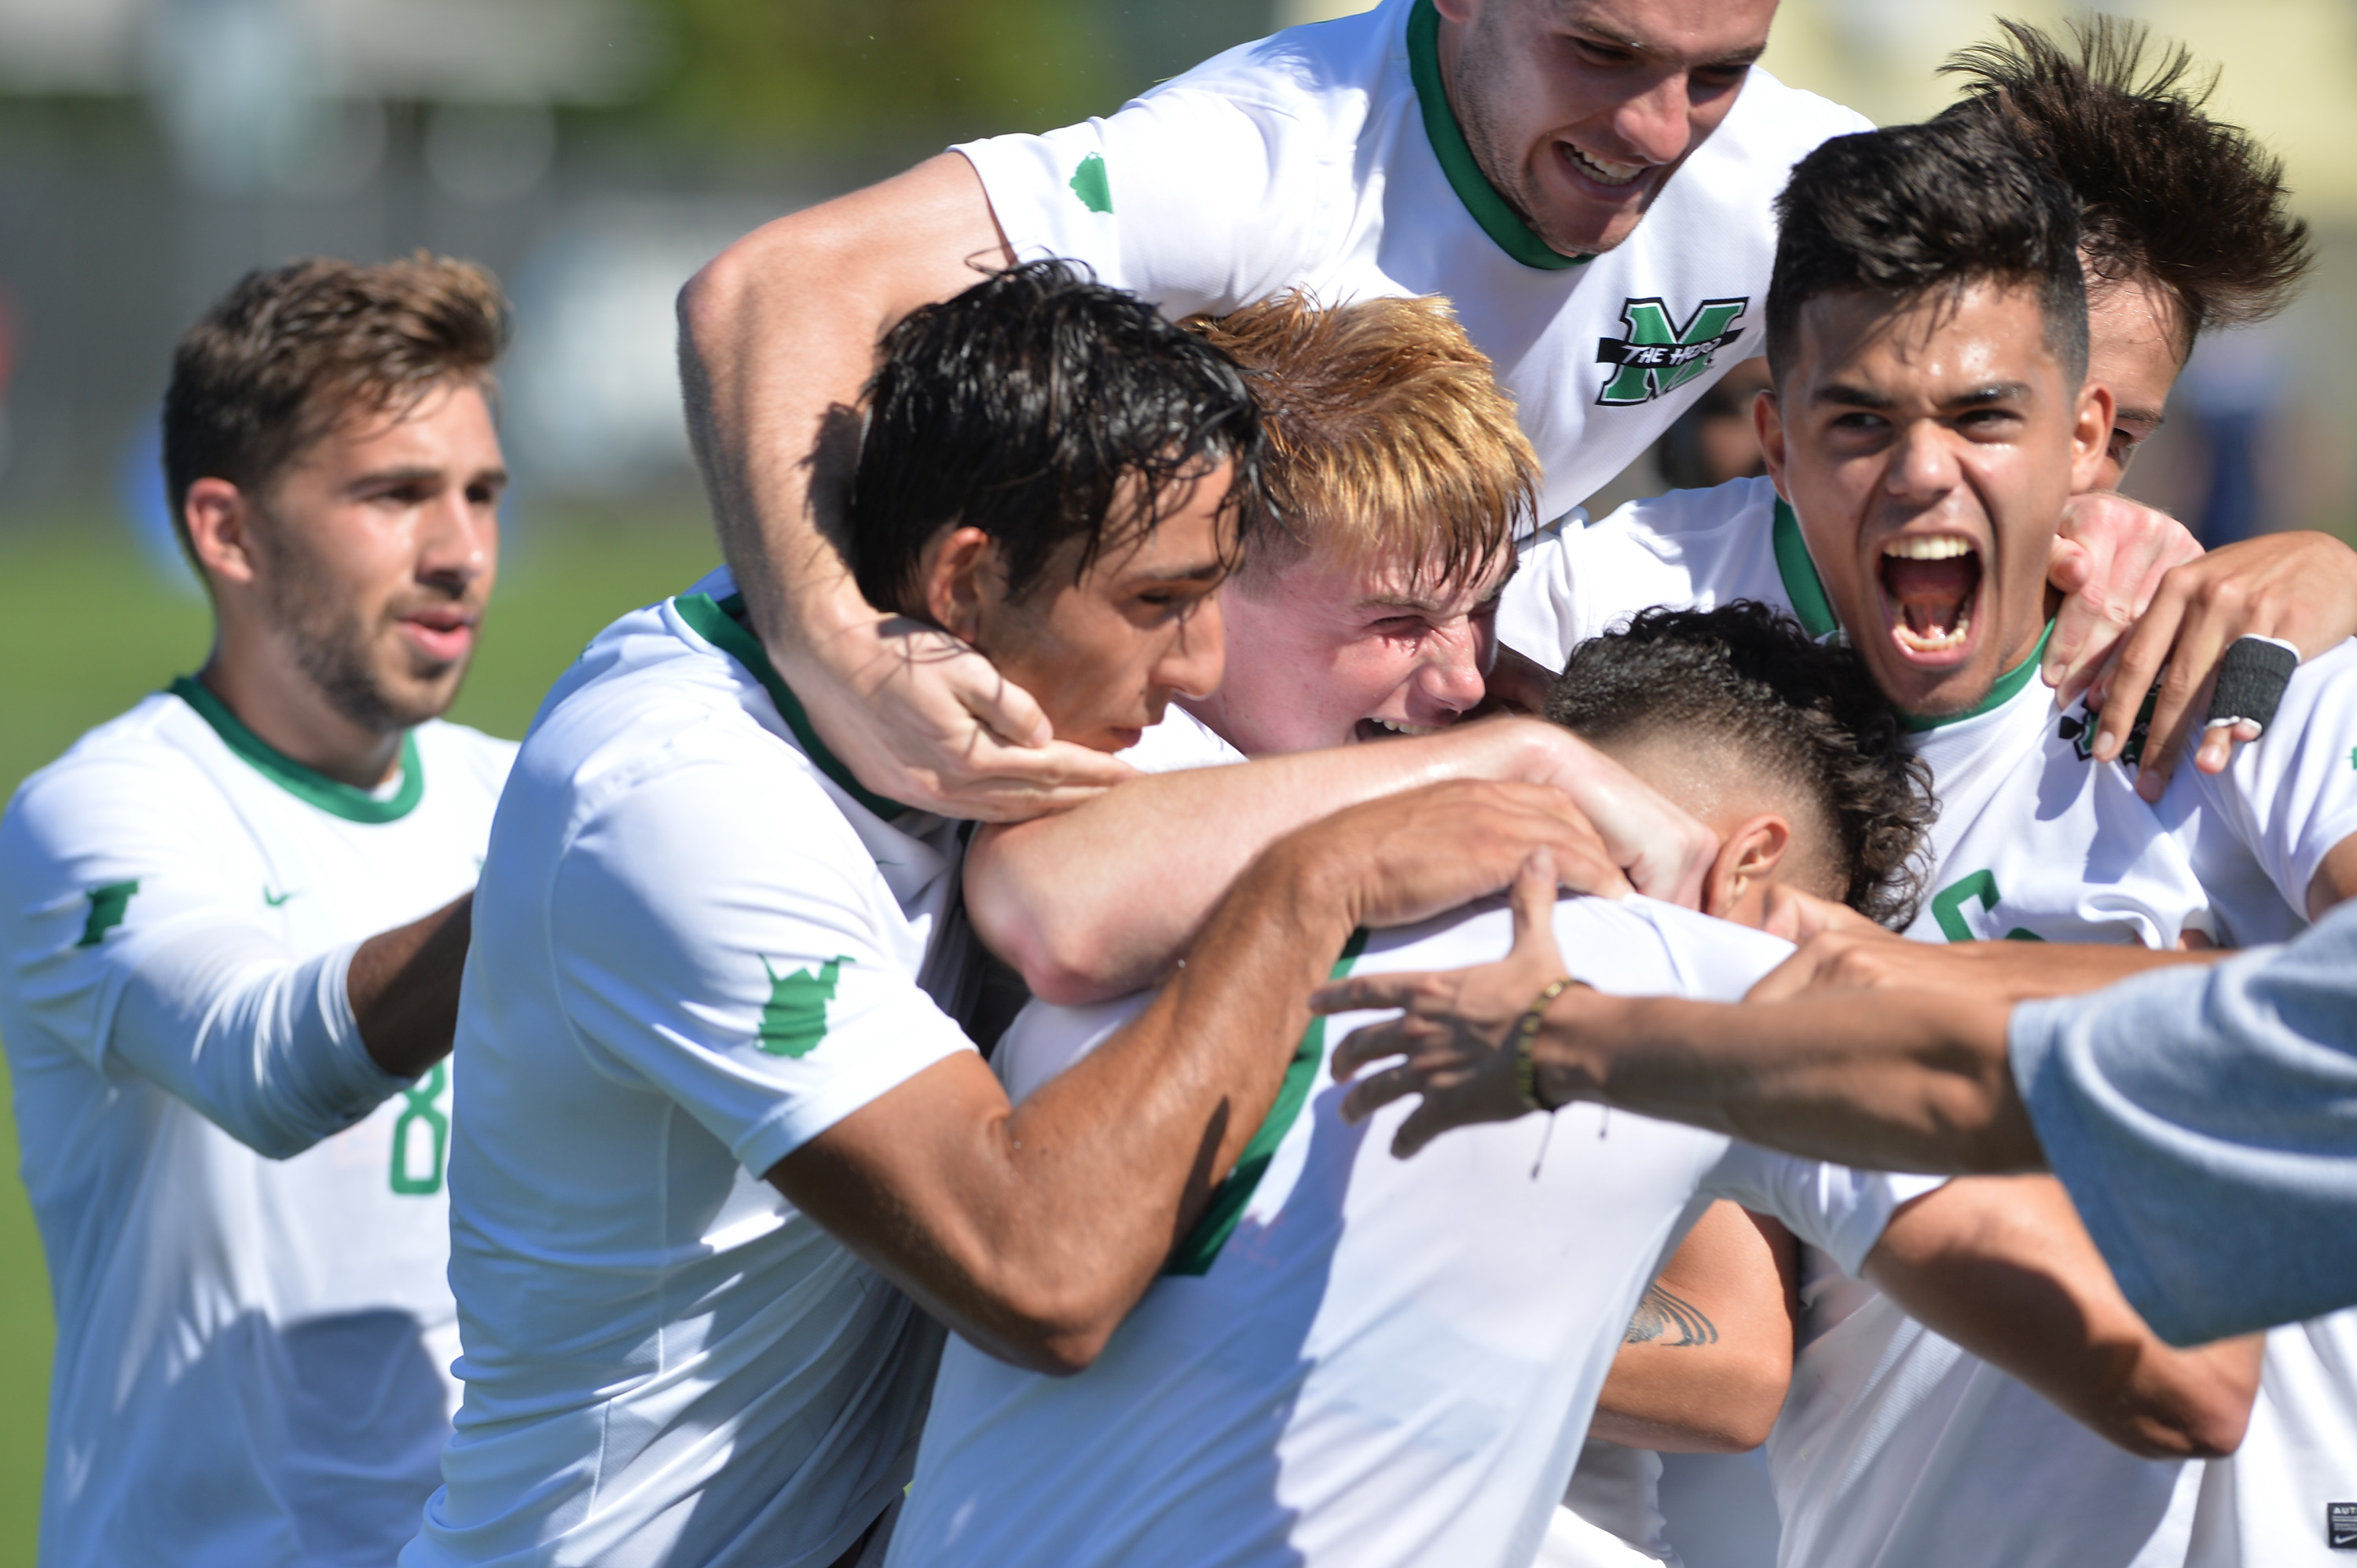 Marshall celebrates after Lewis Knight's goal against Kentucky on Oct. 14.